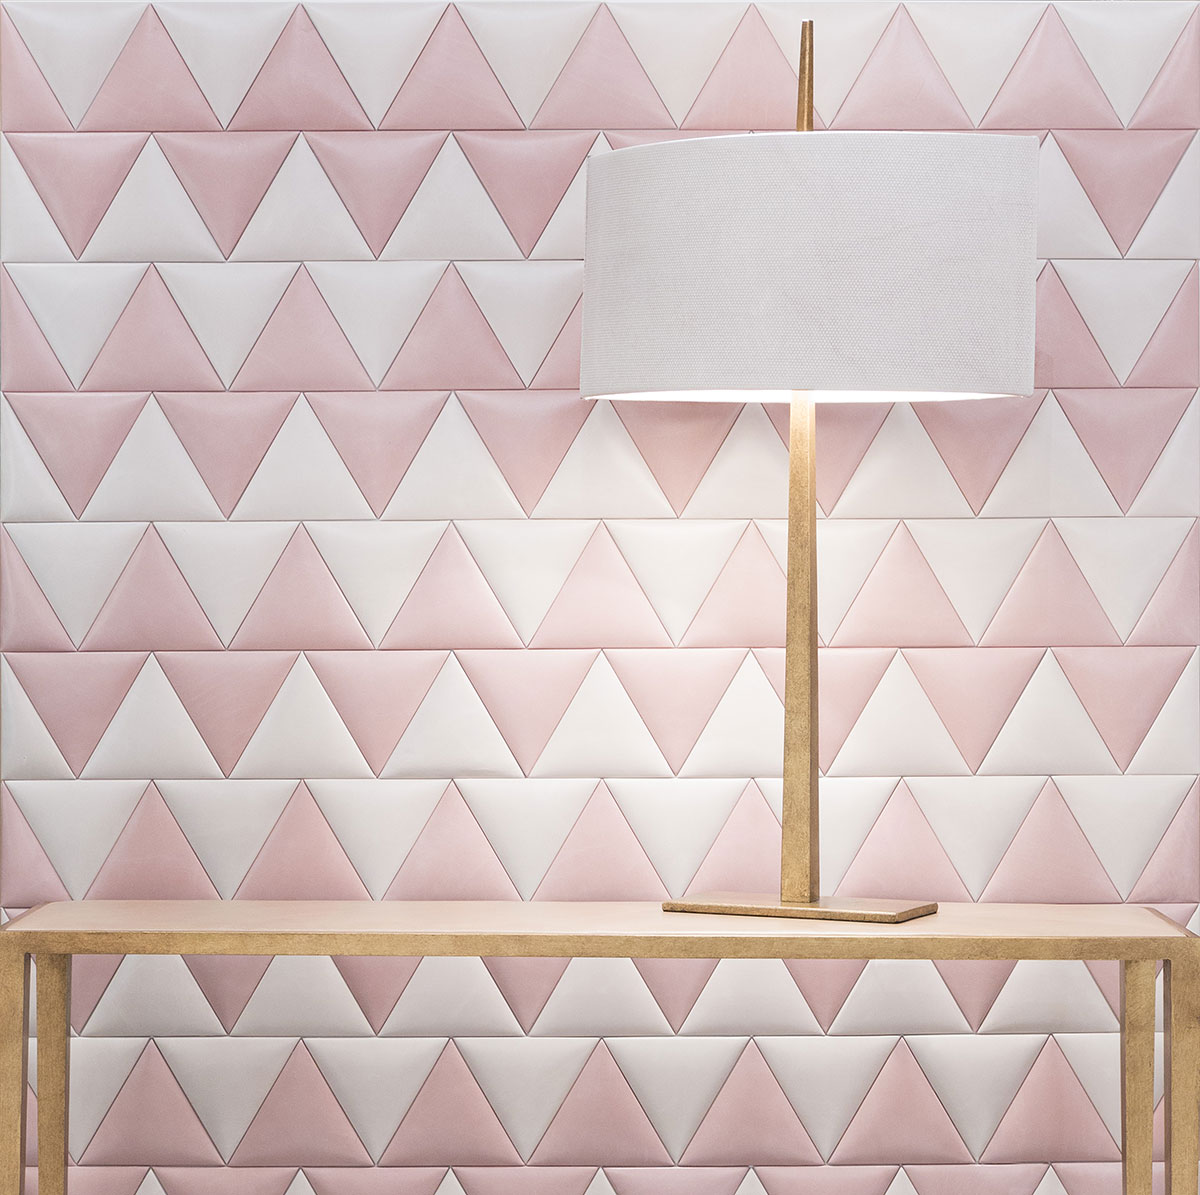 Pink is no longer sweet and innocent-looking but rather, sleek and sophisticated with this metallic leather wall covering. Image credit: TATUM